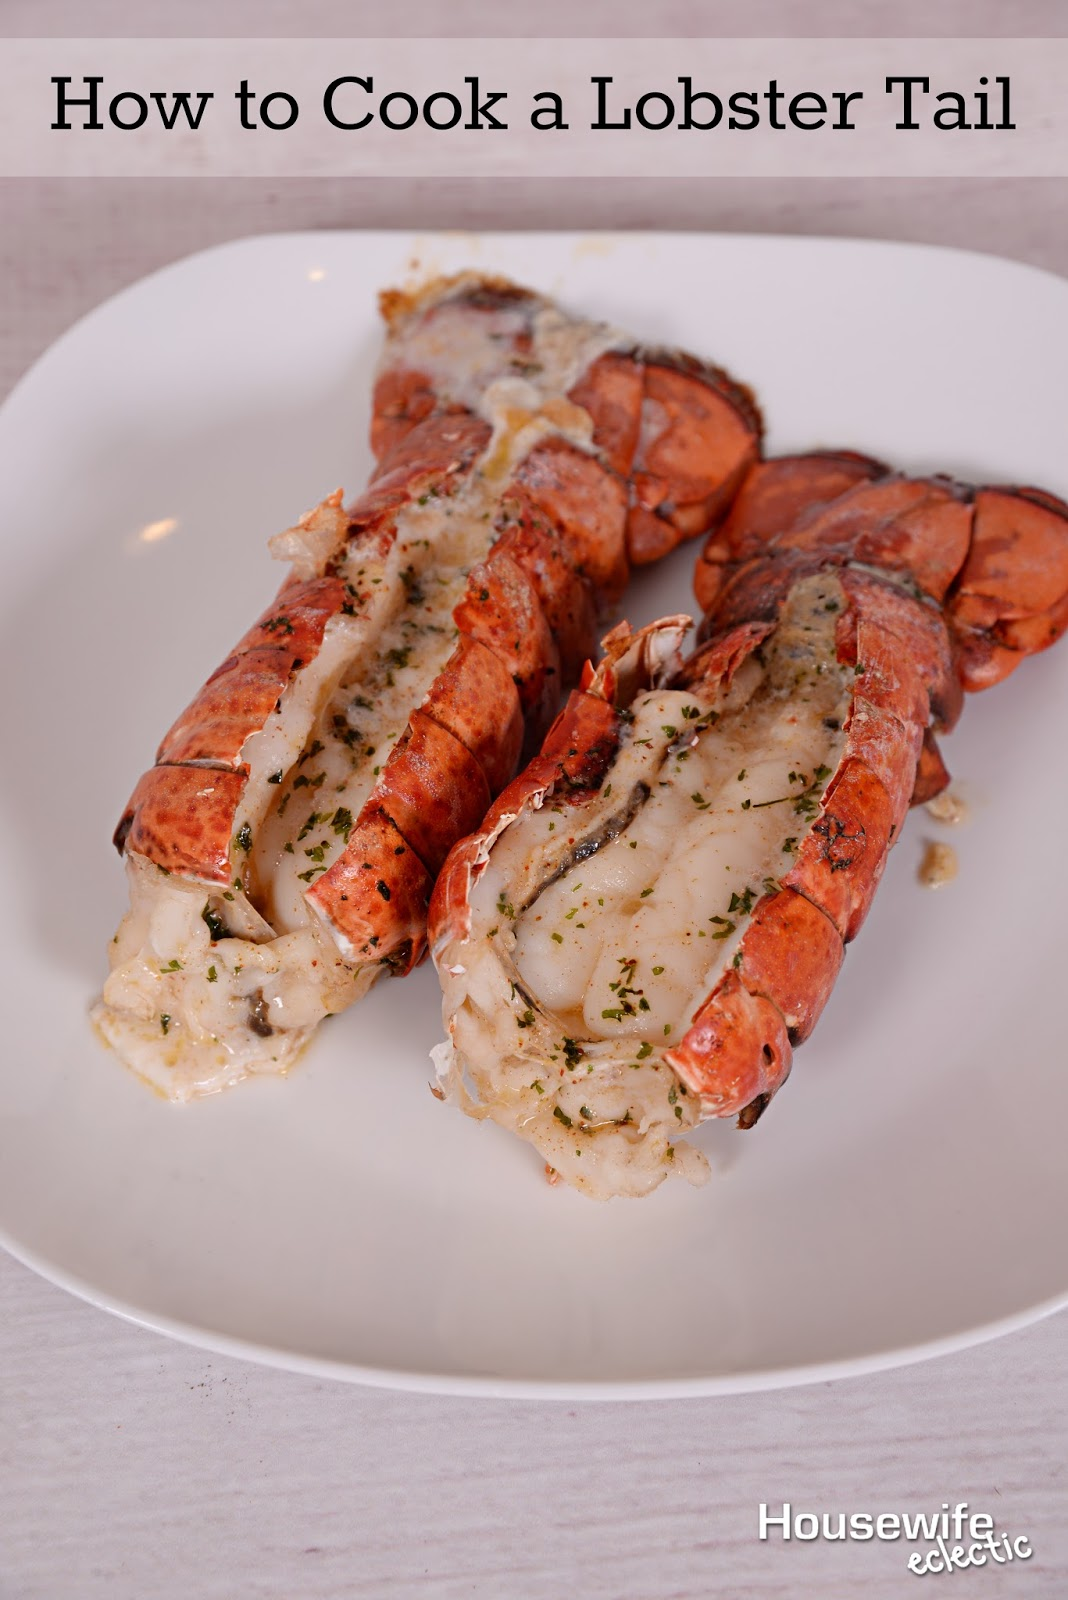 How to Cook a Lobster Tail - Housewife Eclectic